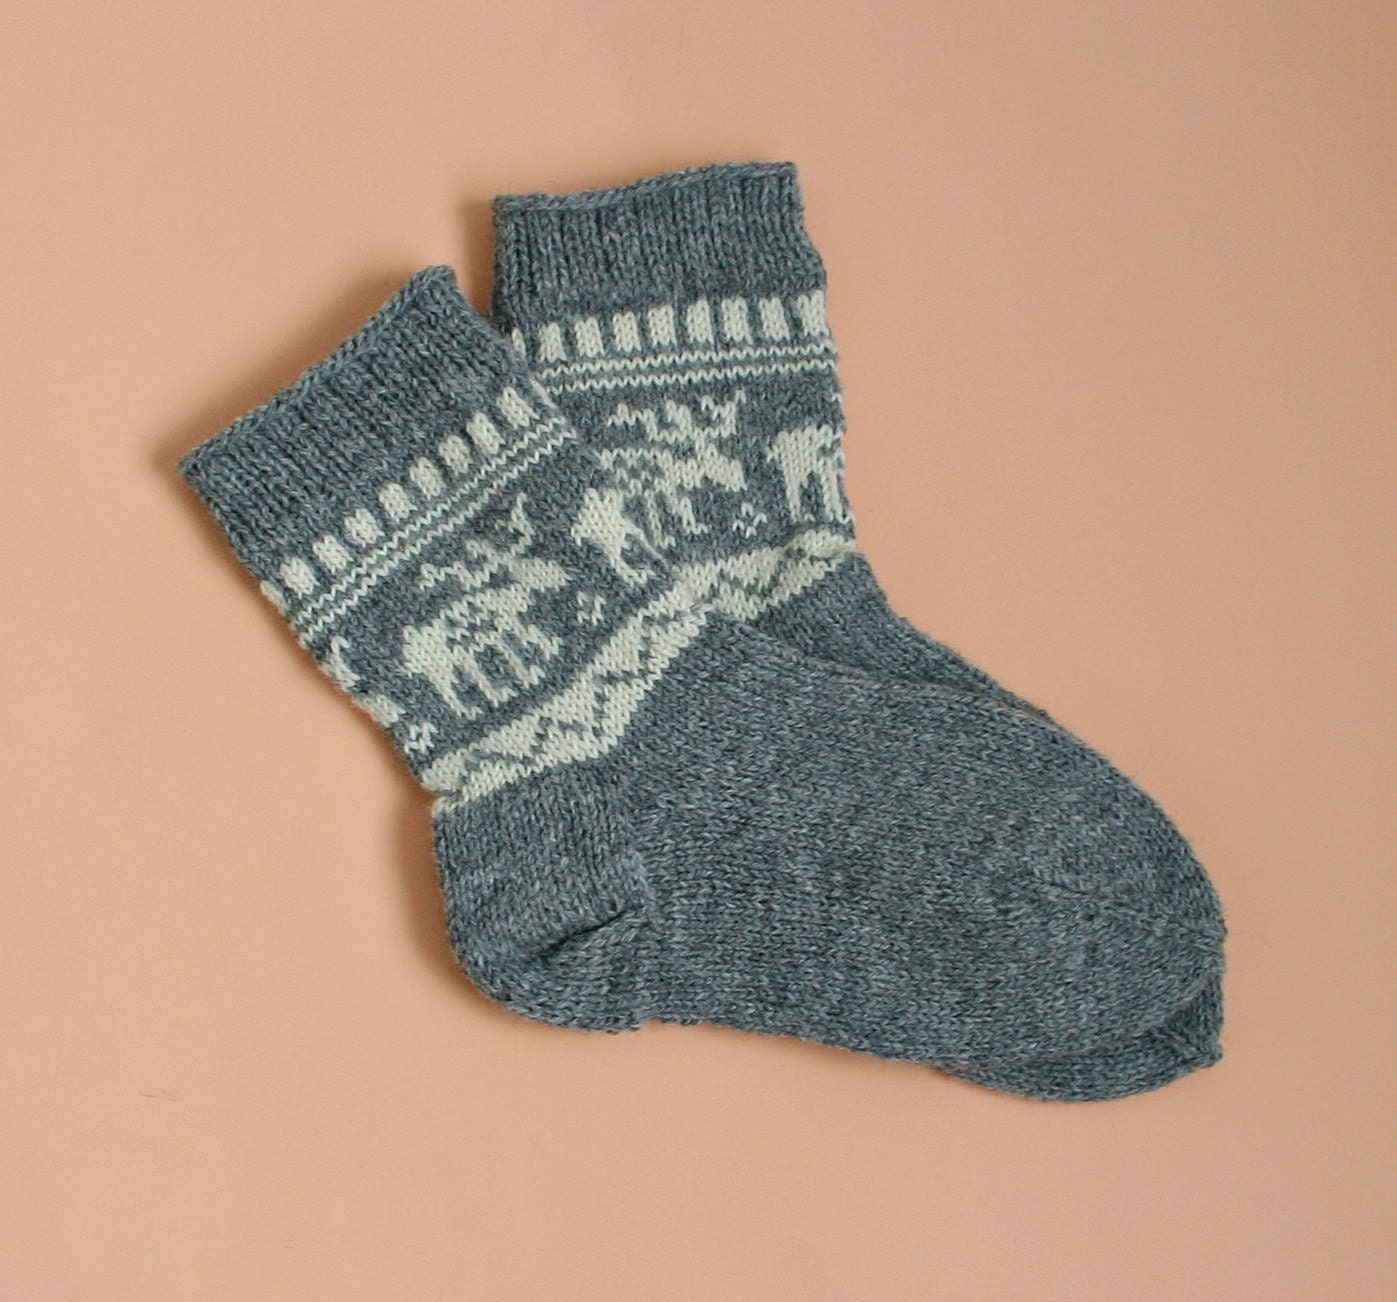 Woolen Knitting Patterns : Hand knit wool socks: Deer pattern socks Moose pattern socks